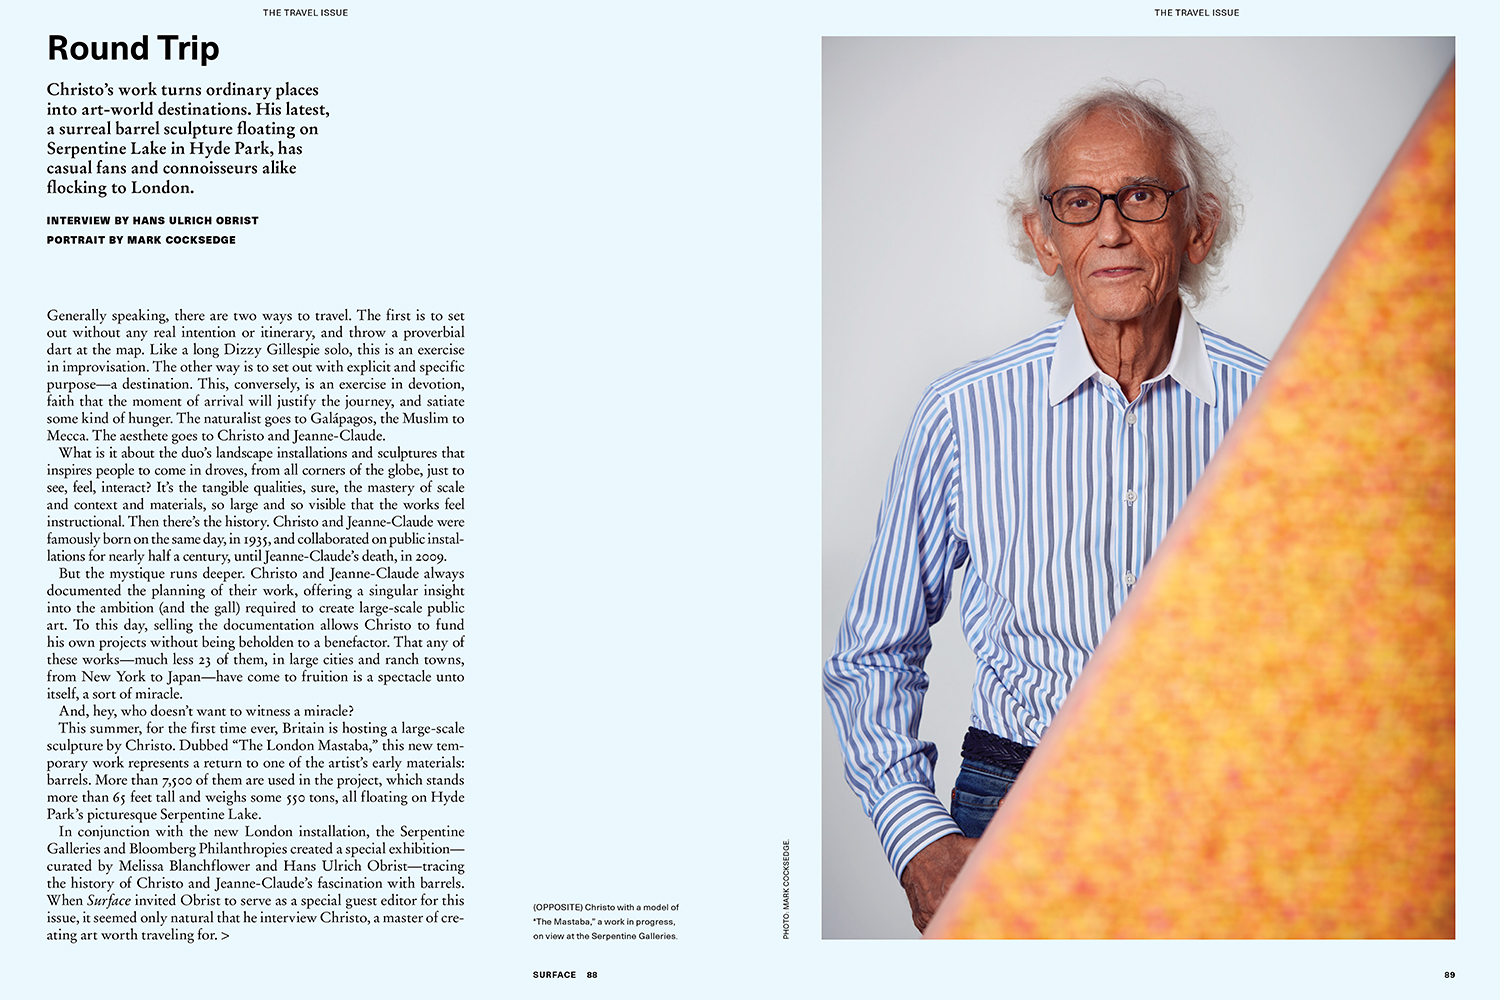 christo_surfacemagazine_©markcocksedge_003.JPG